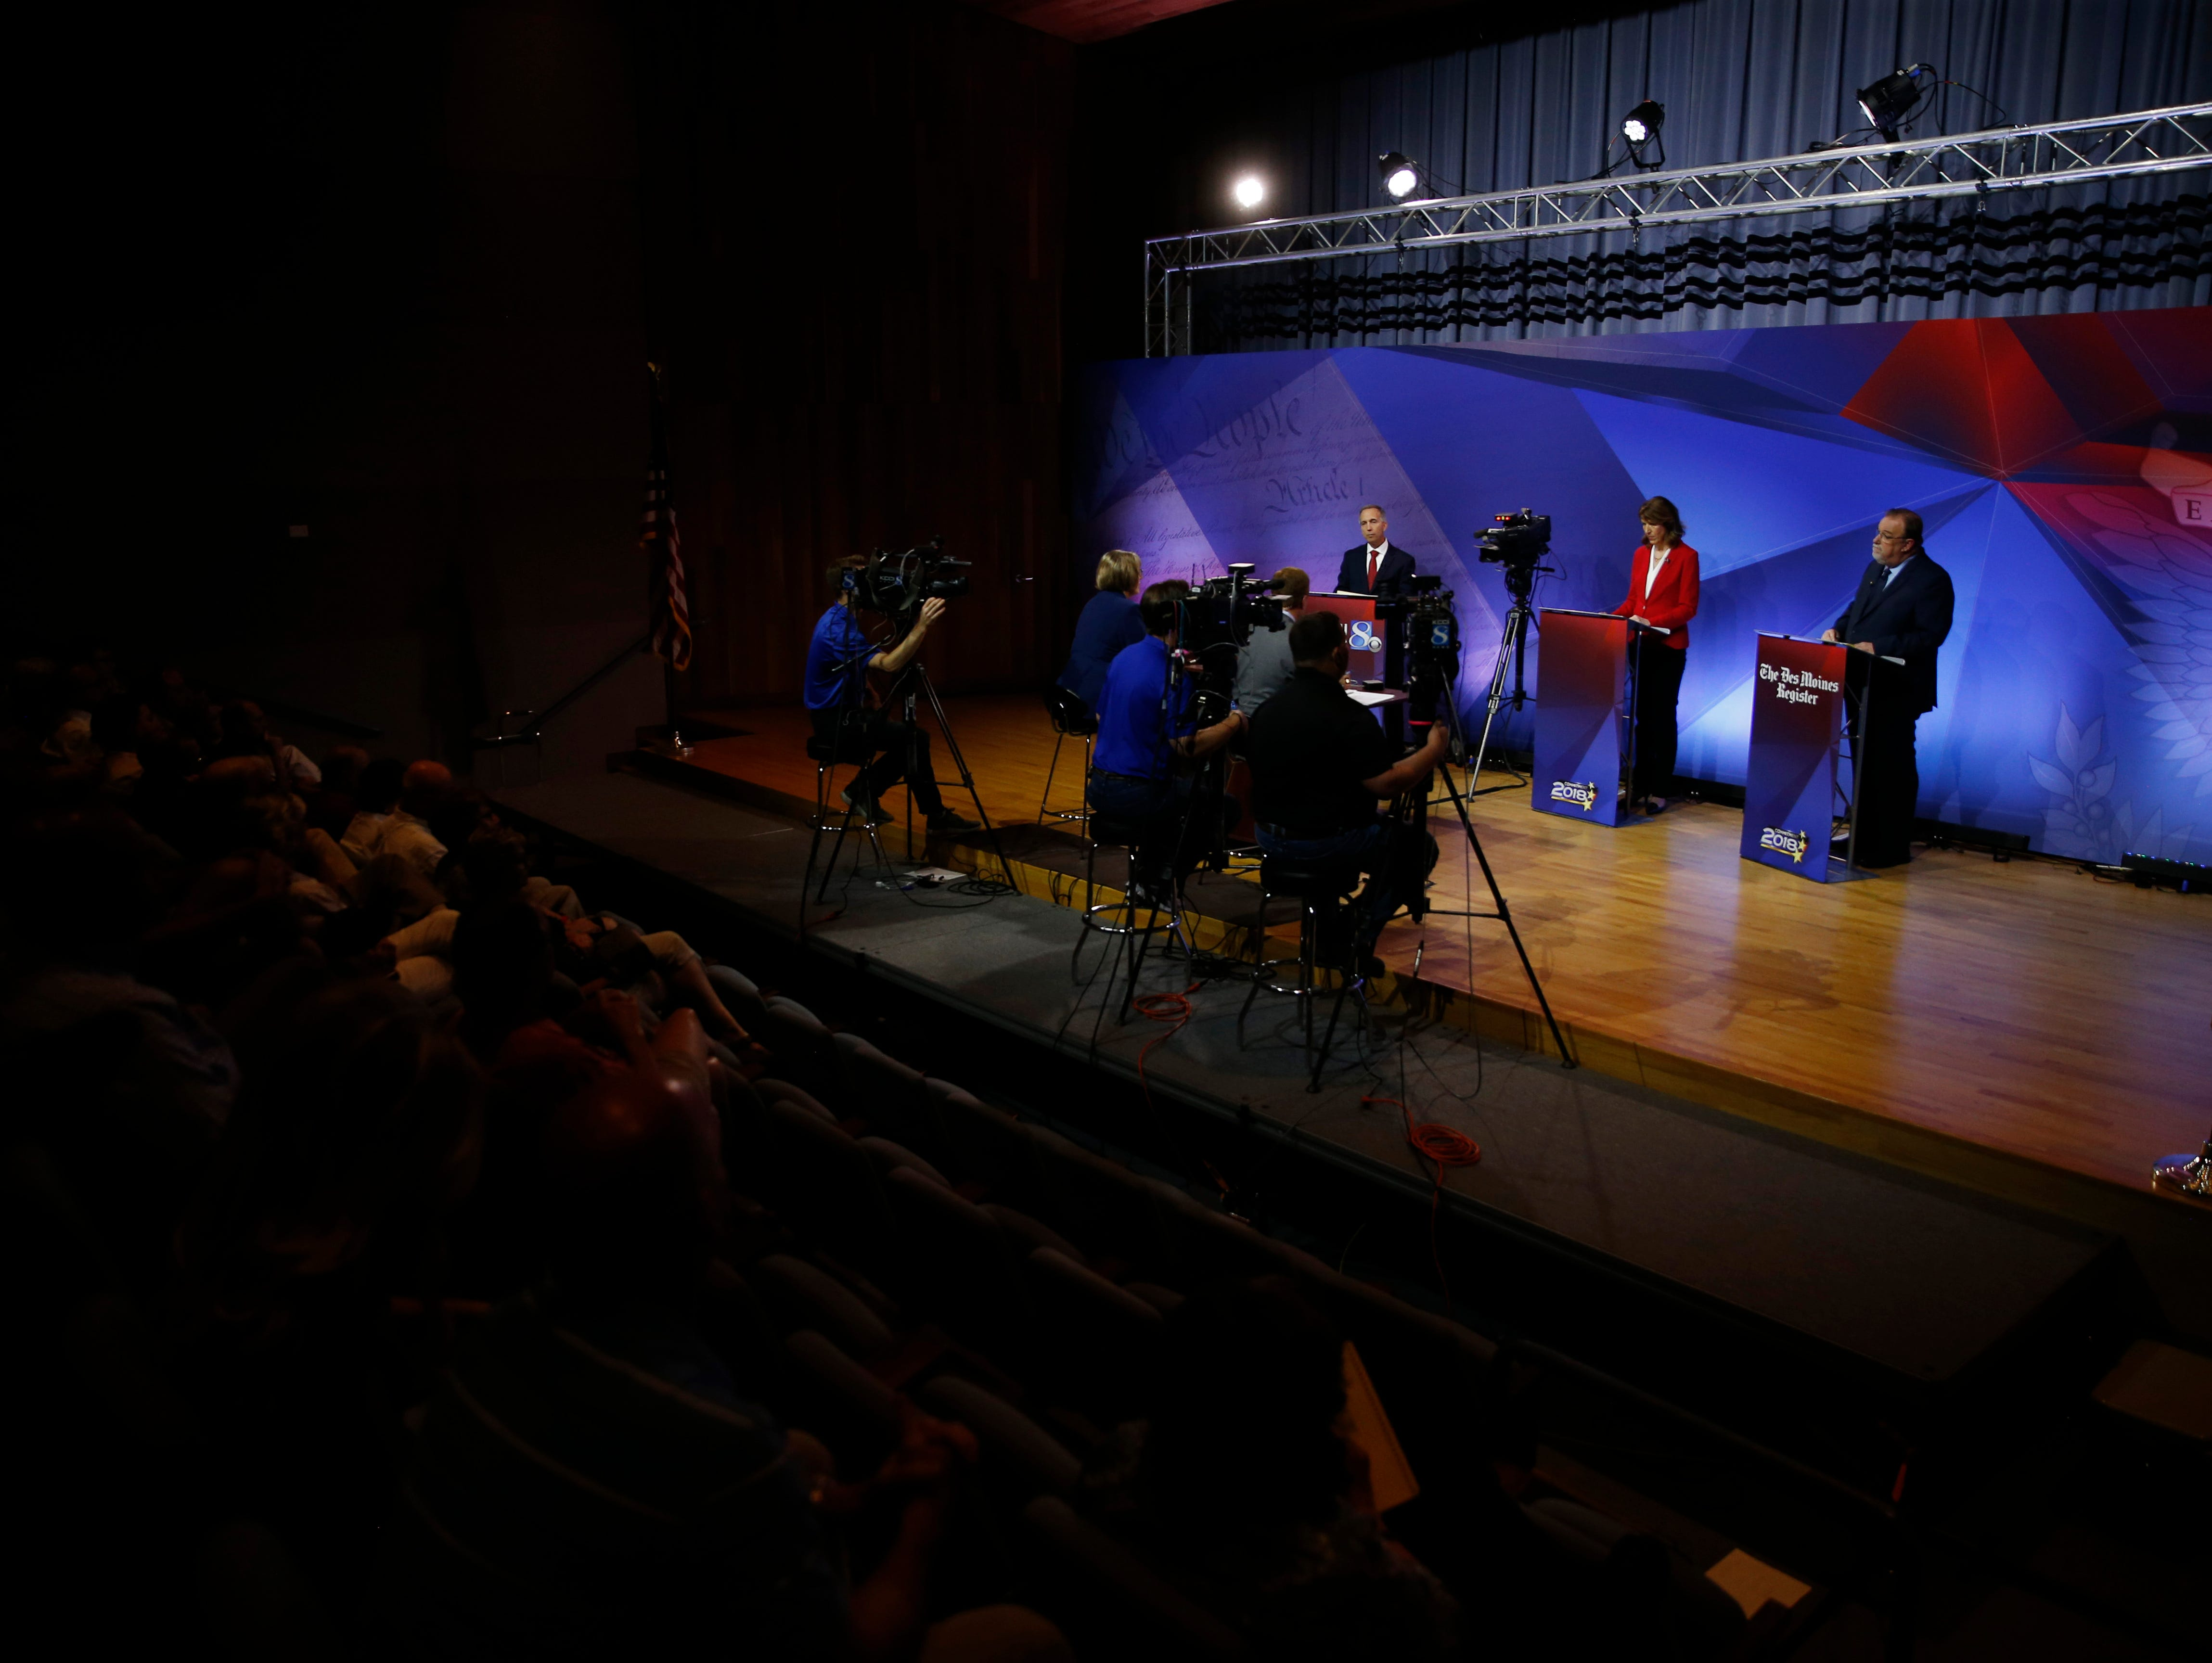 As a special thank you to Insiders, the Register is giving away pairs of tickets to the gubernatorial debate.